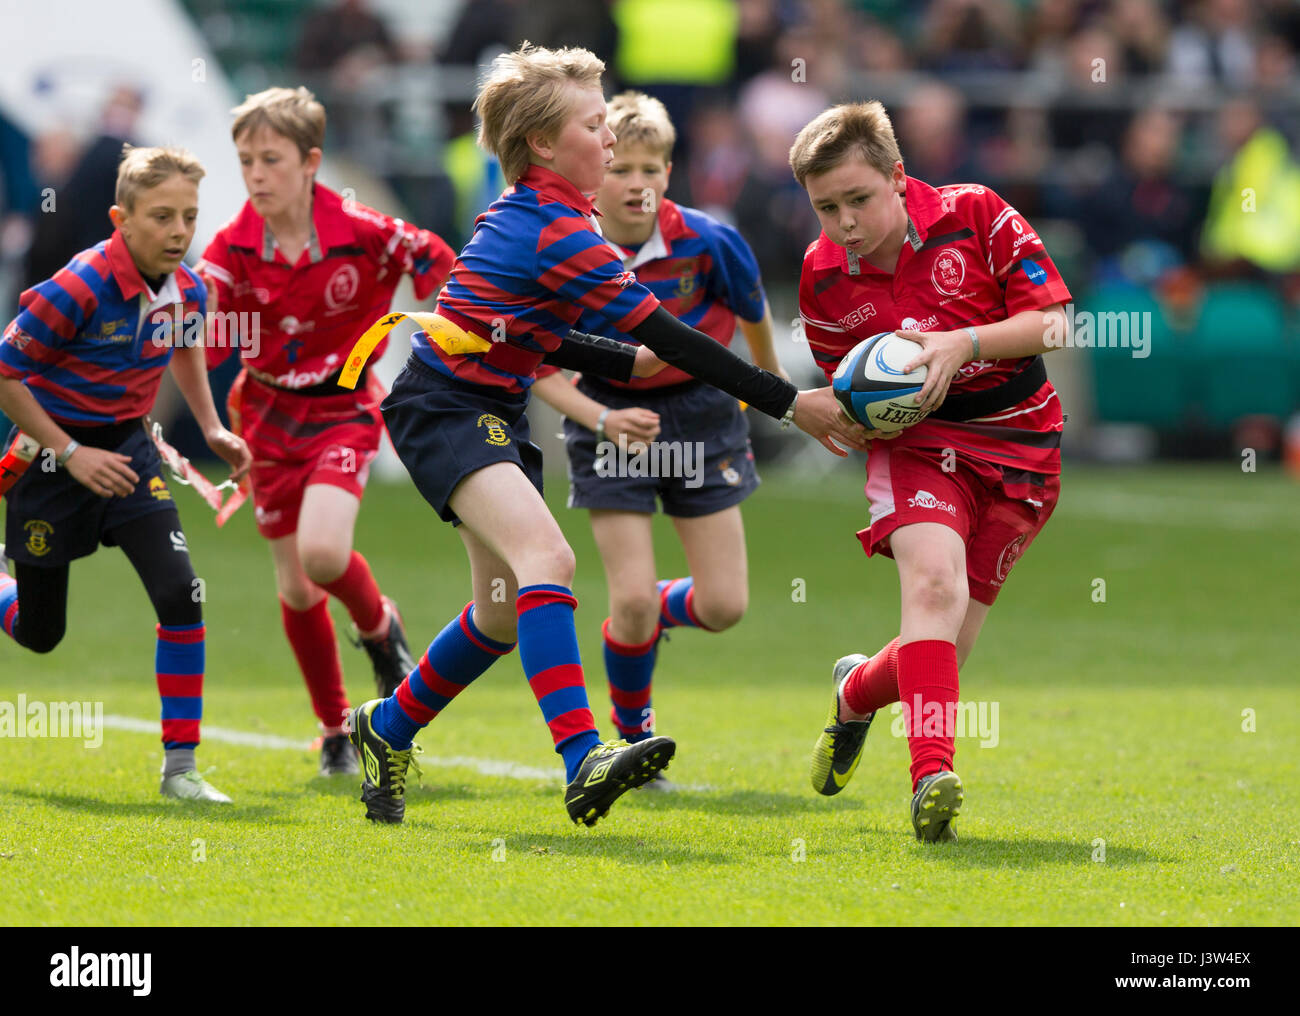 Teams of children playing tag rugby - Stock Image